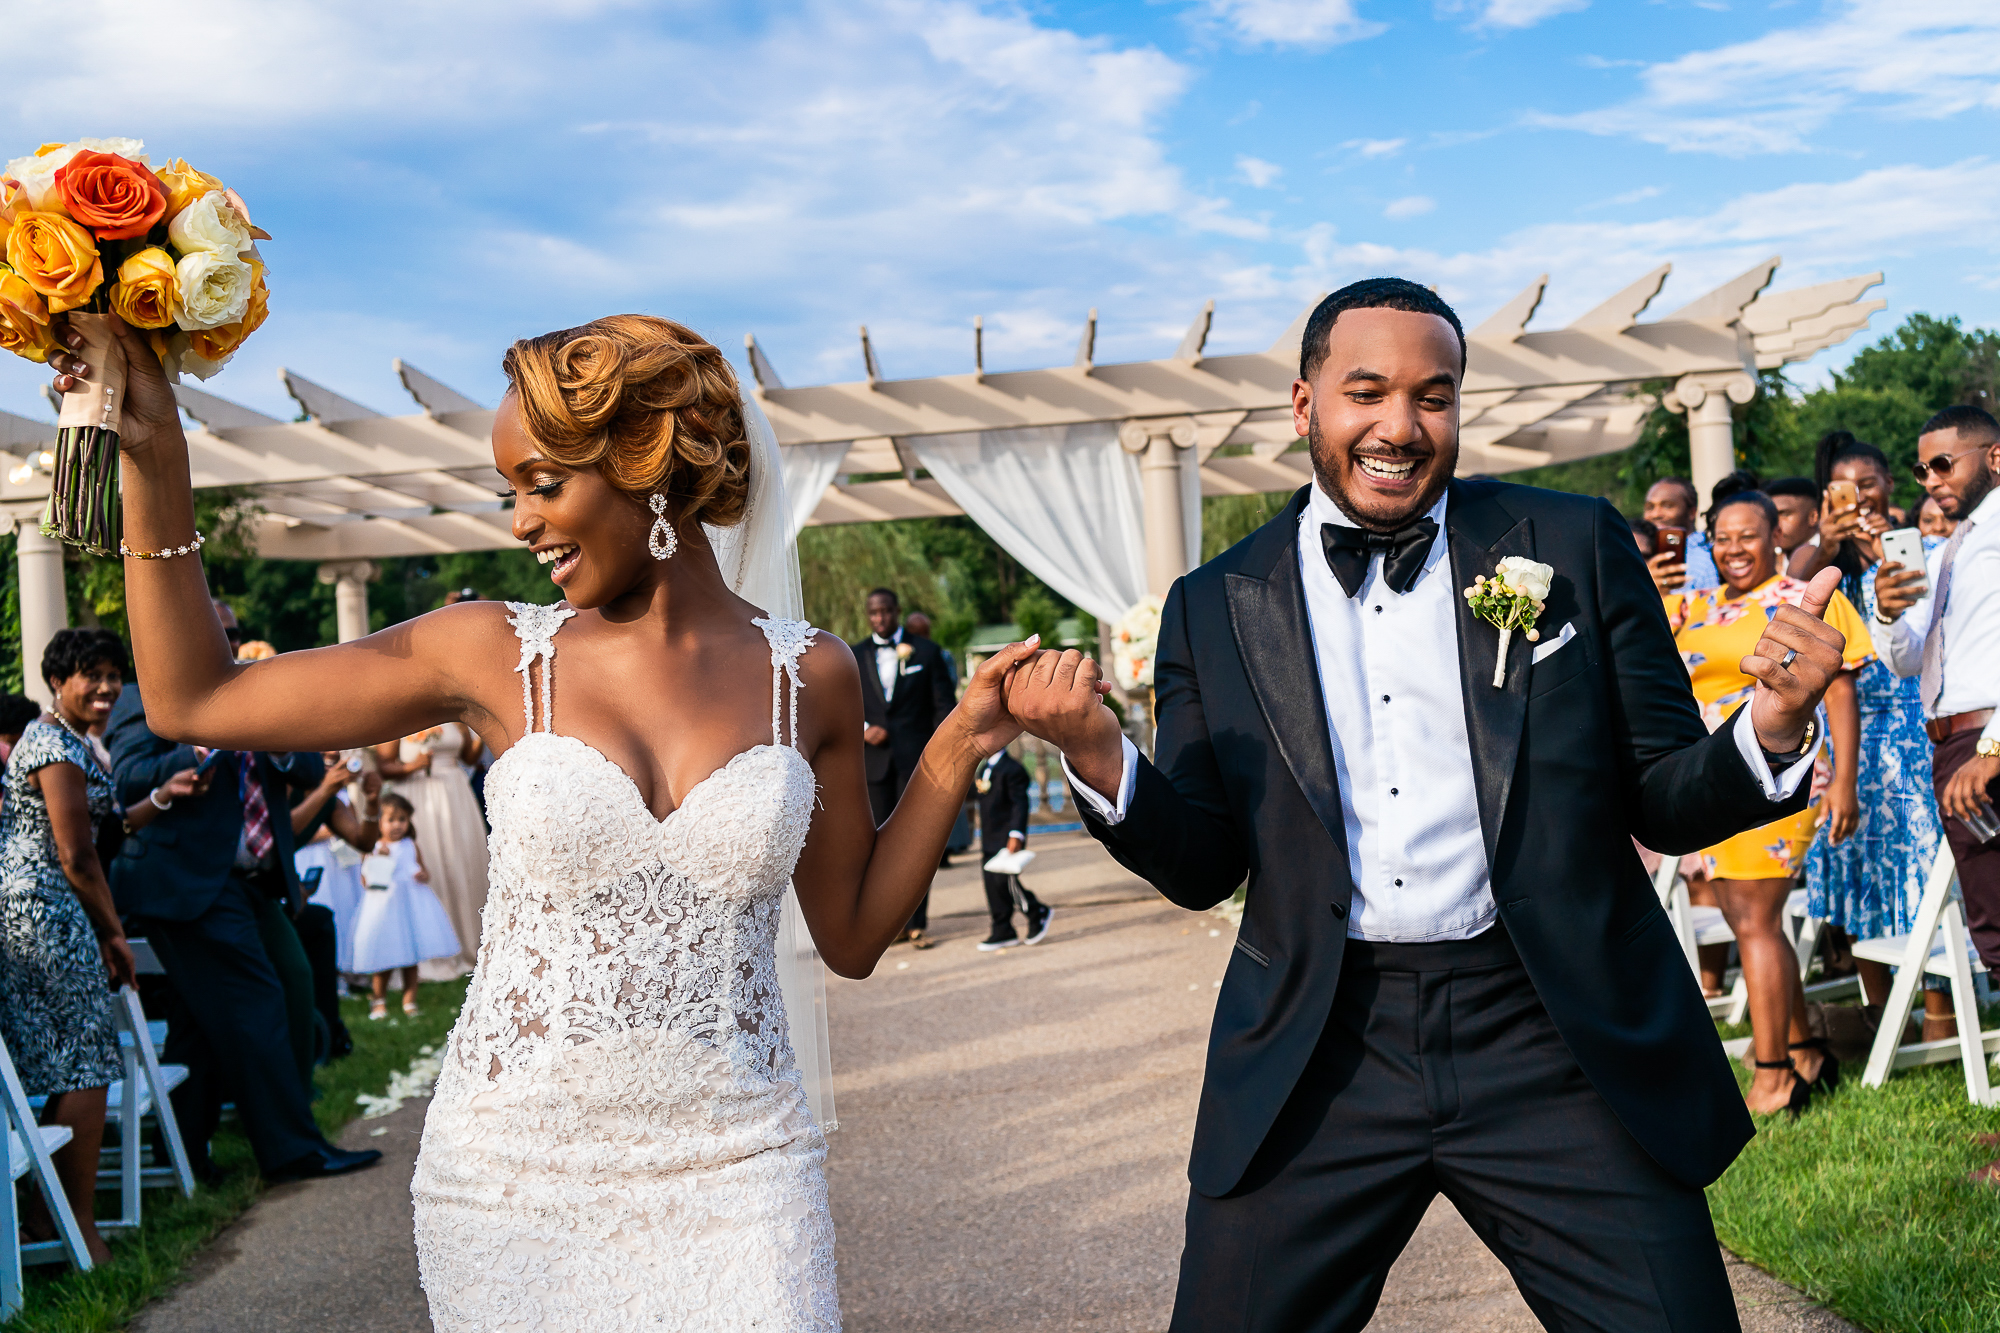 just-married-christopher-jason-studios-morais-vineyard-winery-bride-and-groom-celebrate-during-ceremony